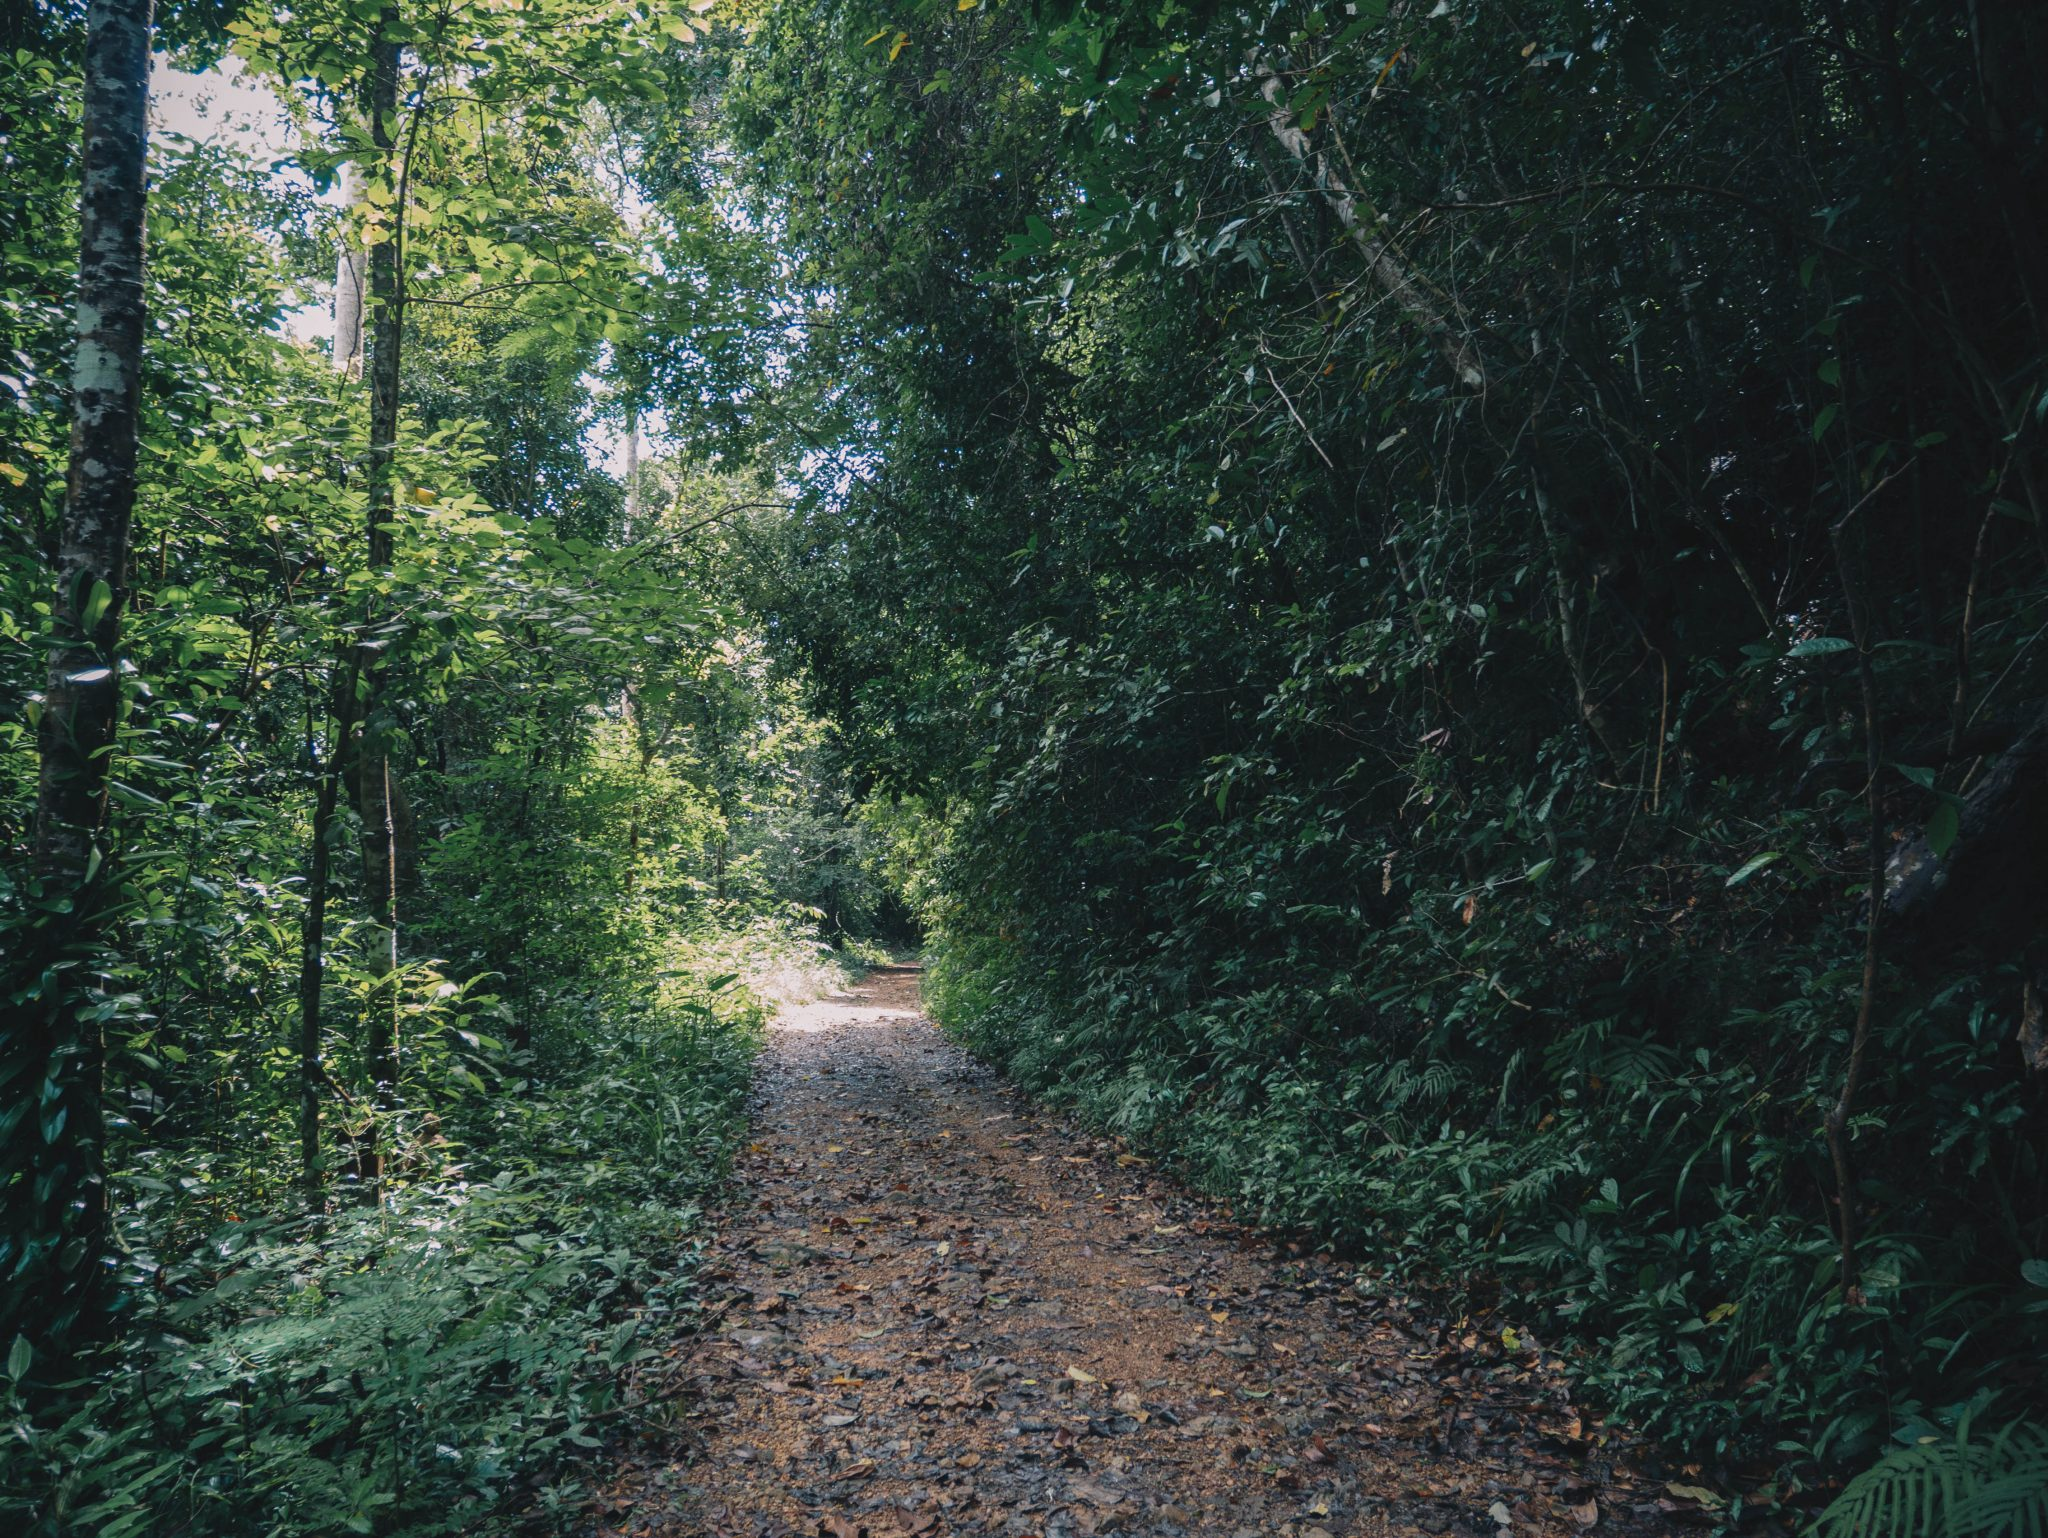 Kep National Park Hiking Trail